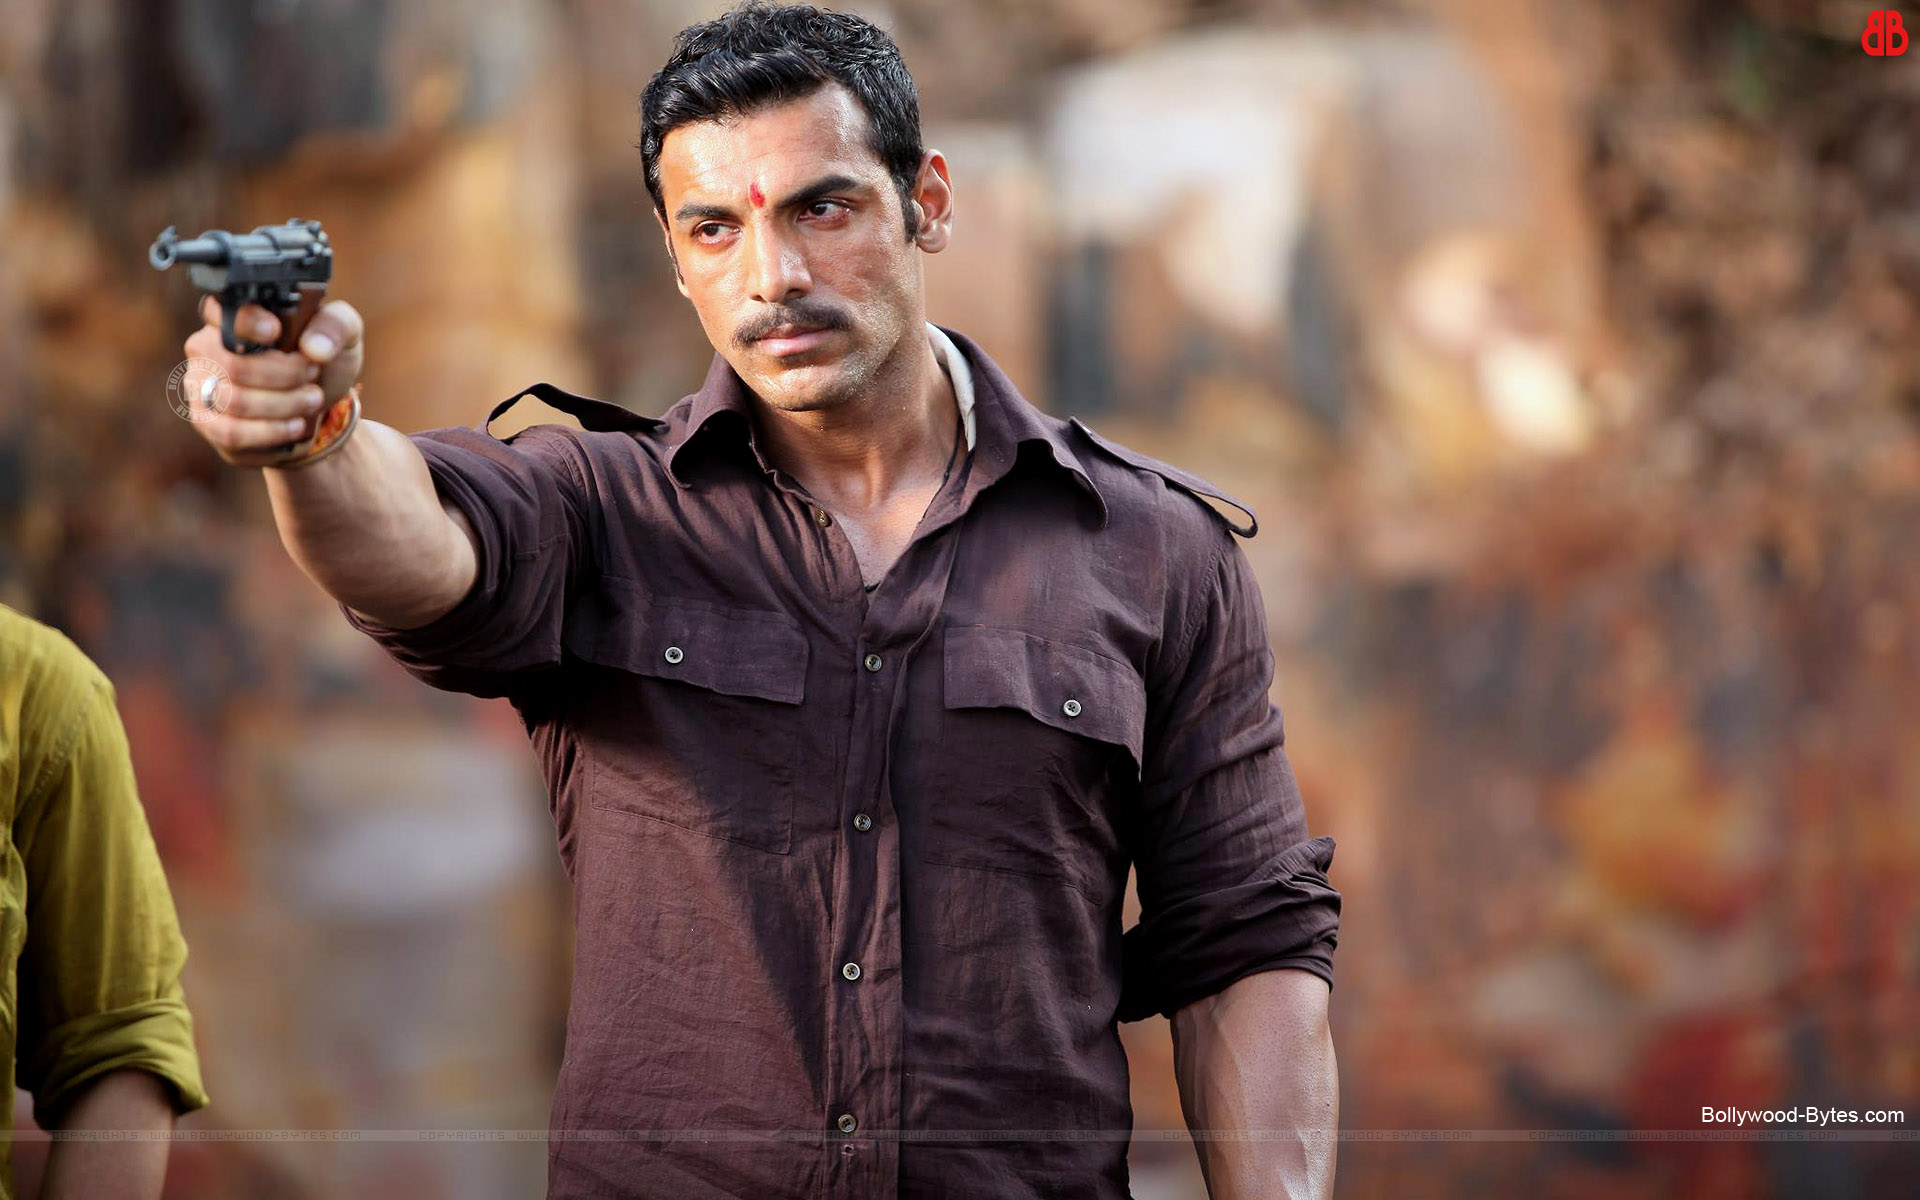 Shootout At Wadala  John Abraham HD WallpaperJohn Abraham Body Building In Shootout At Wadala